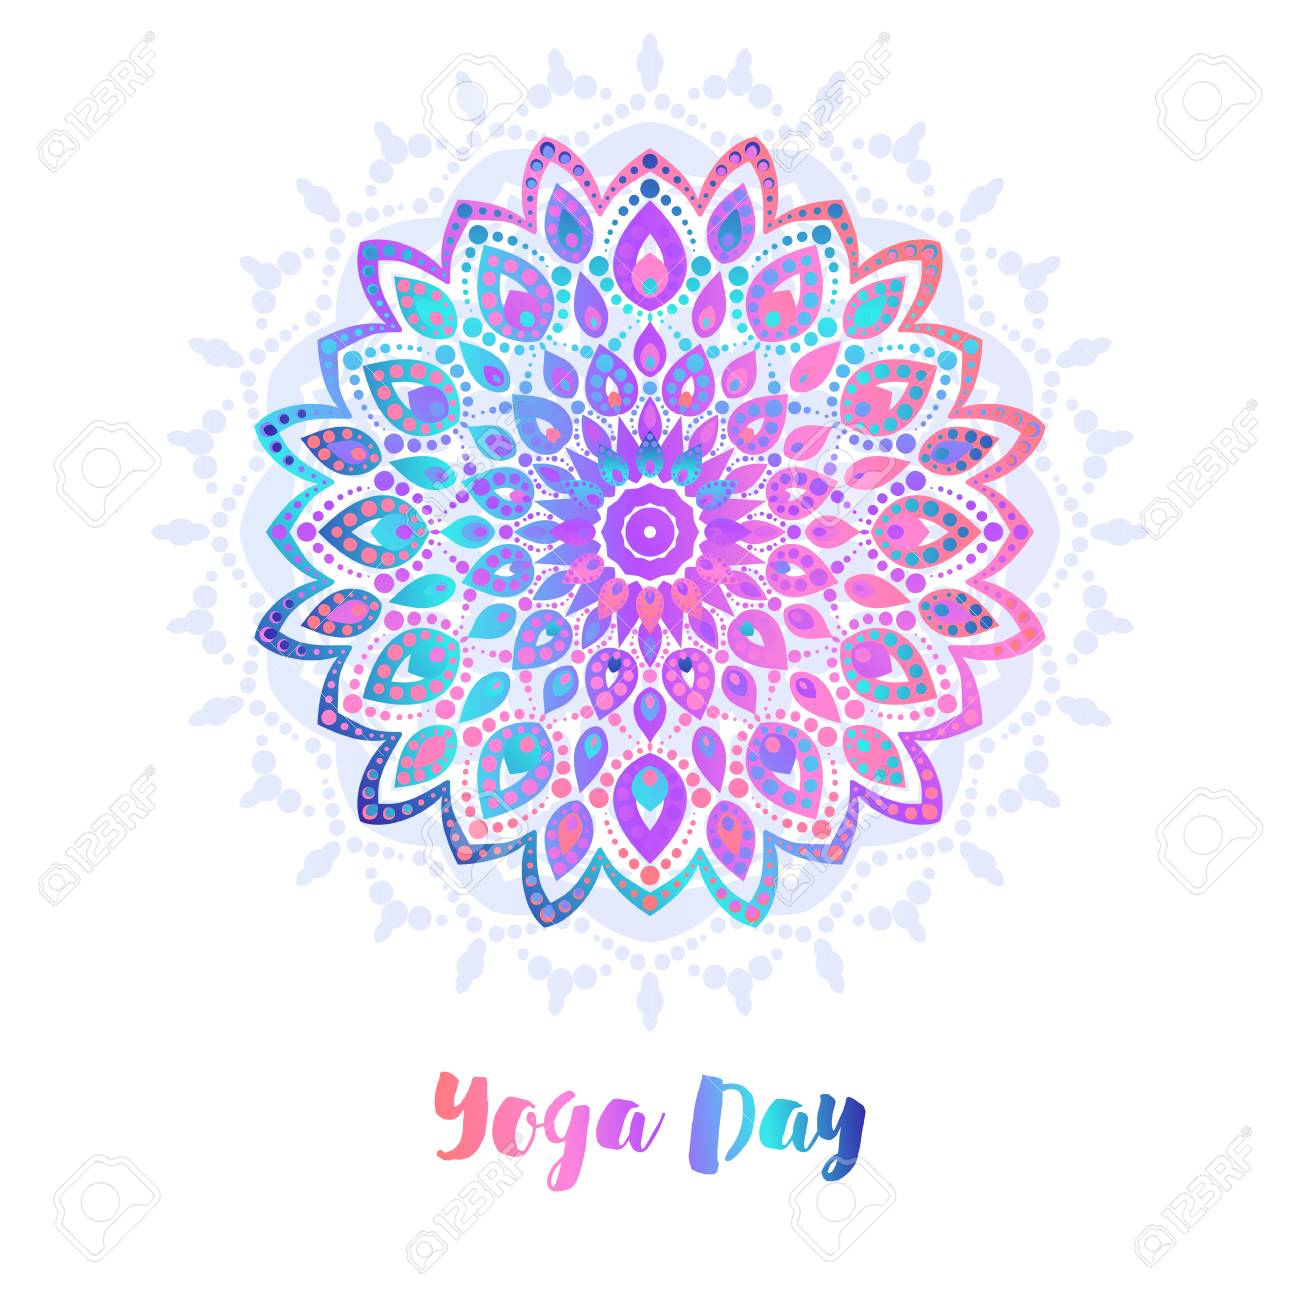 Yoga Bright Background Template With Mandala In Acid Color For Royalty Free Cliparts Vectors And Stock Illustration Image 101257360